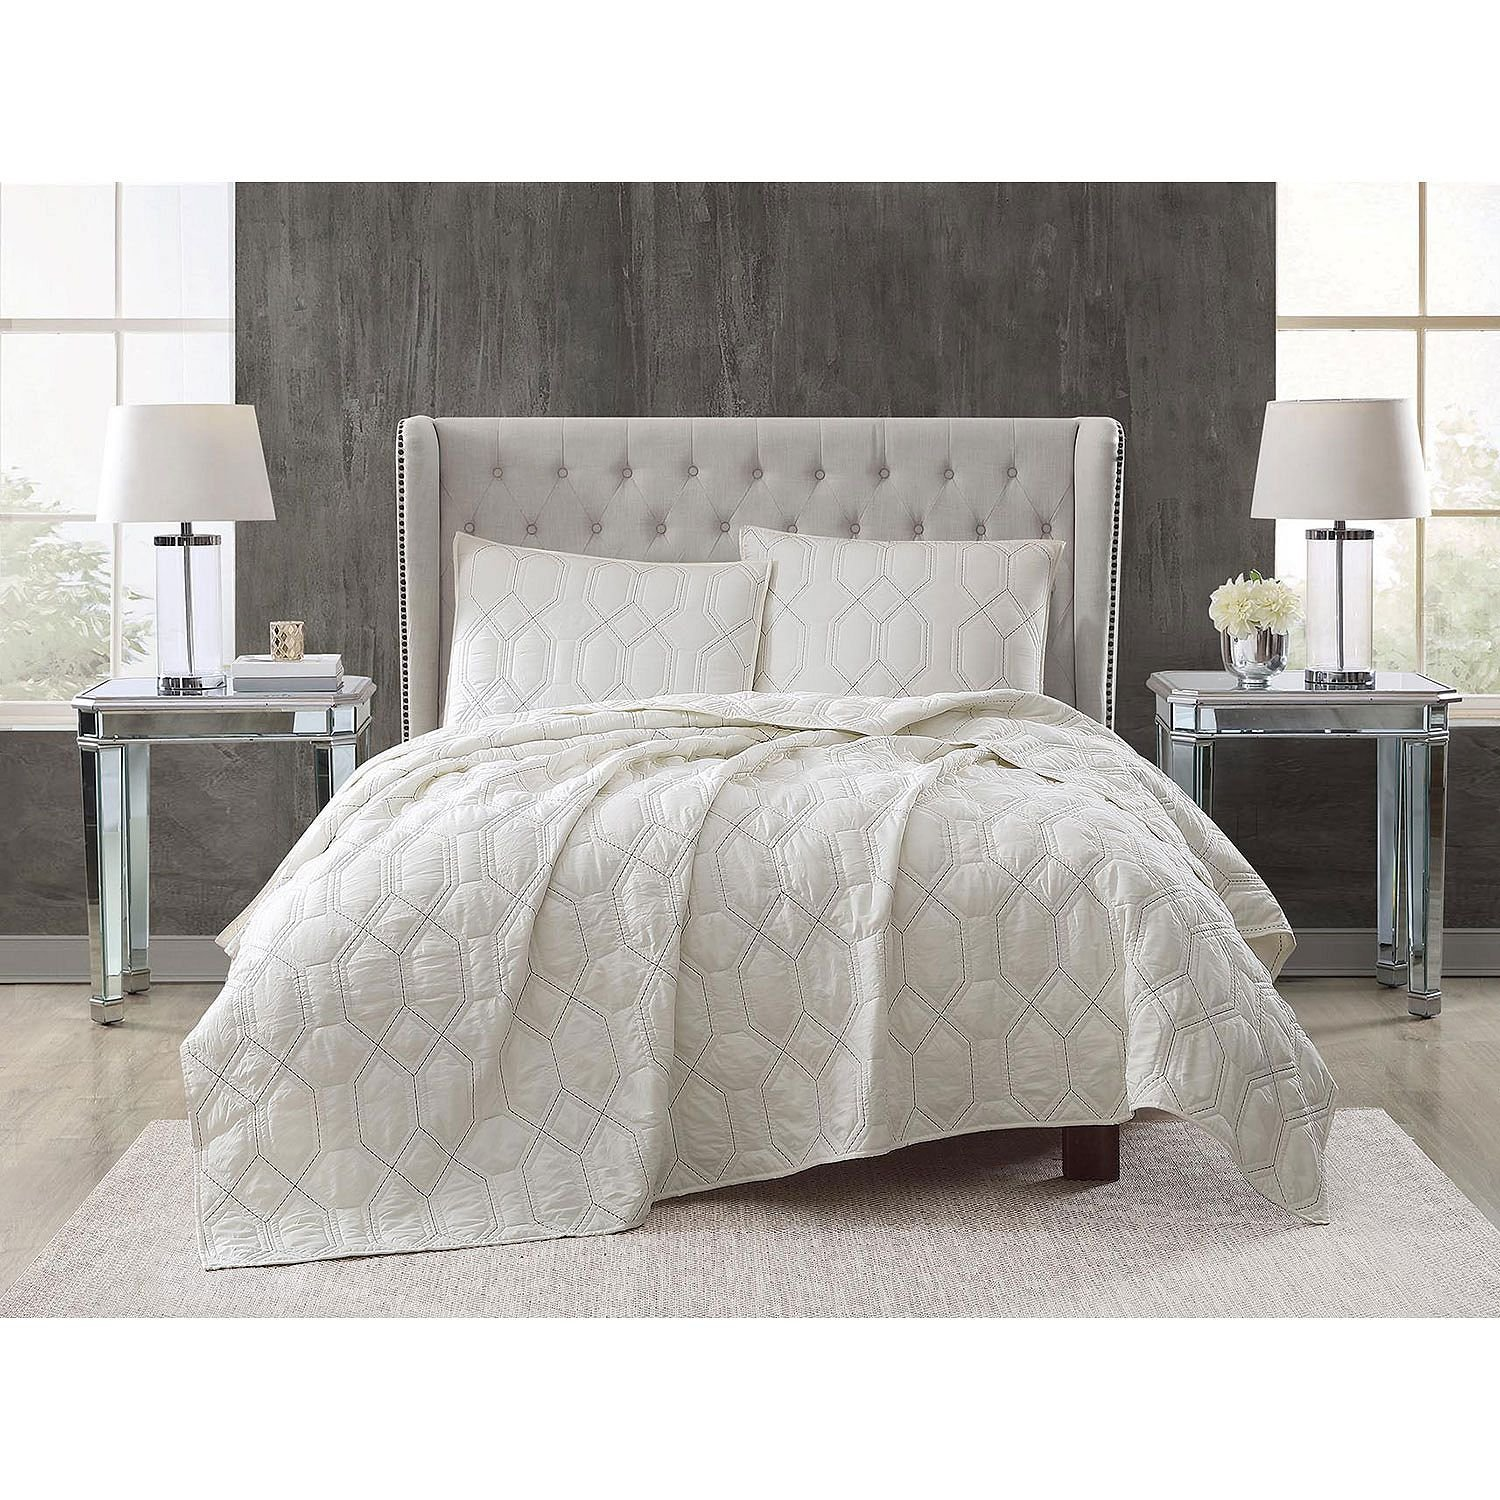 Christian Siriano 3-Piece Embroidered Quilt Set (Full/Queen - Ivory)